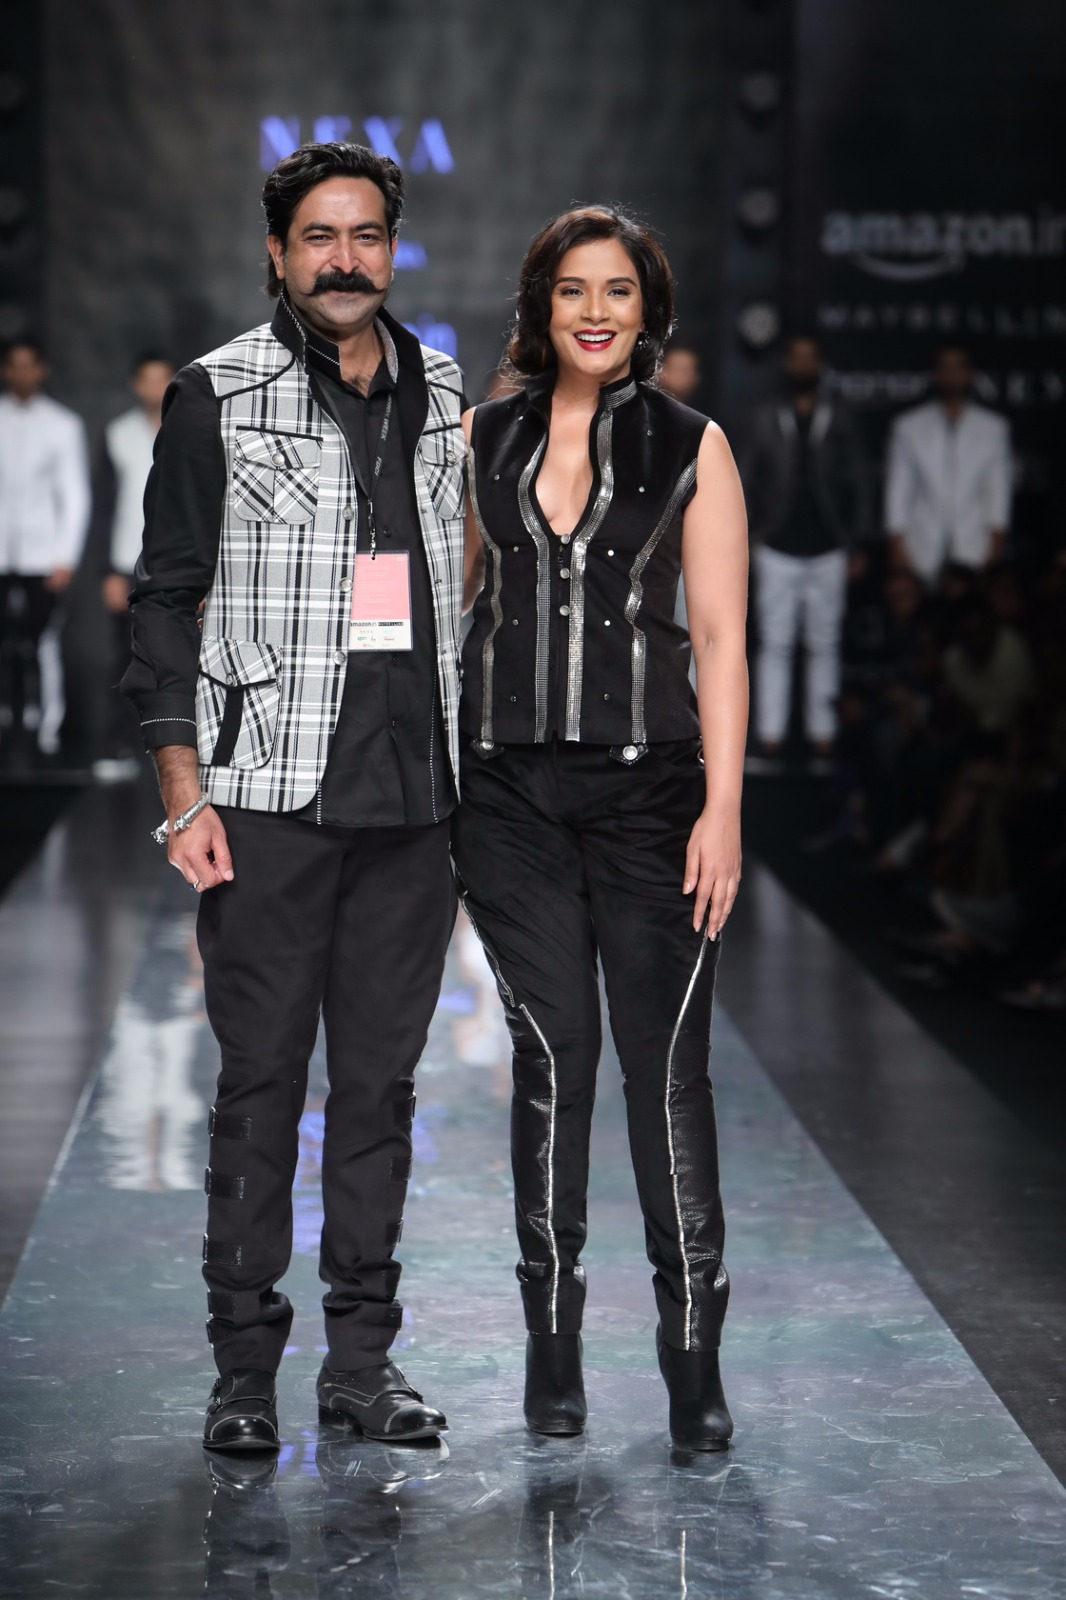 http://www.talksassy.com/wp-content/uploads/2017/03/Amazon-India-Fashion-Week-Autumn-Winter-2017-14.jpg